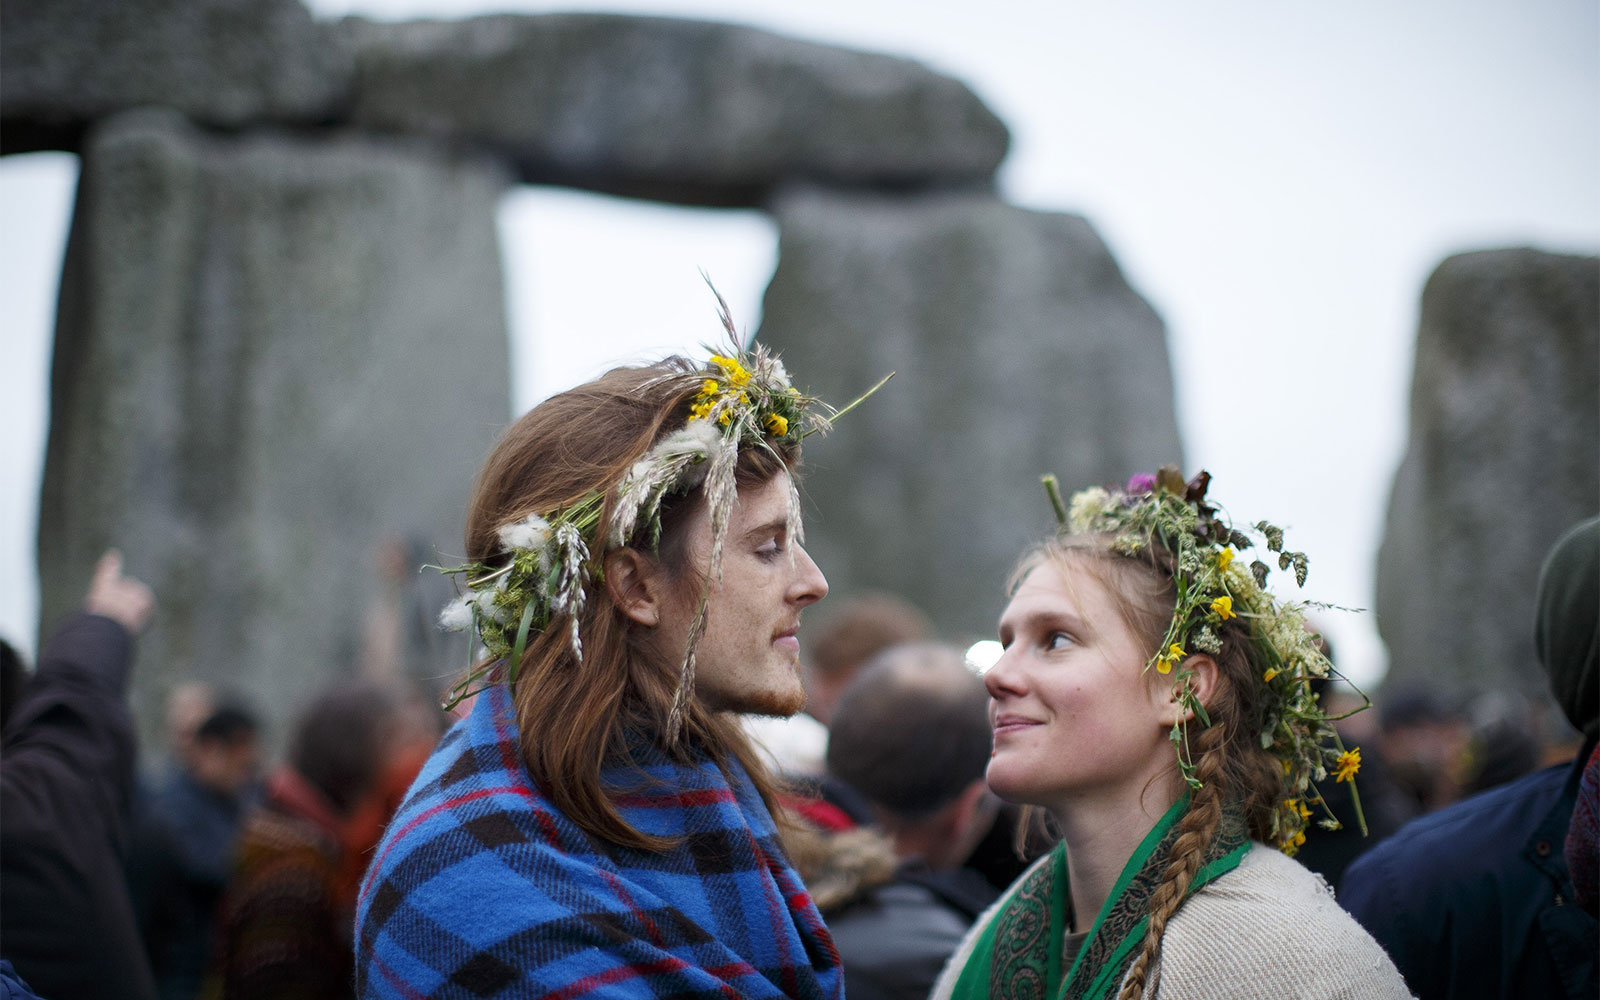 SALISBURY, UNITED KINGDOM - JUNE 21: Revelers take part in celebrations to mark the summer solstice at Stonehenge prehistoric monument on June 21, 2015 in Wiltshire, England. Thousands of revellers gather at the 5,000 year old stone circle in Wiltshire to see the sunrise on the Summer Solstice dawn. The solstice sunrise marks the longest day of the year in the Northern Hemisphere. (Photo by Tolga Akmen/Anadolu Agency/Getty Images)